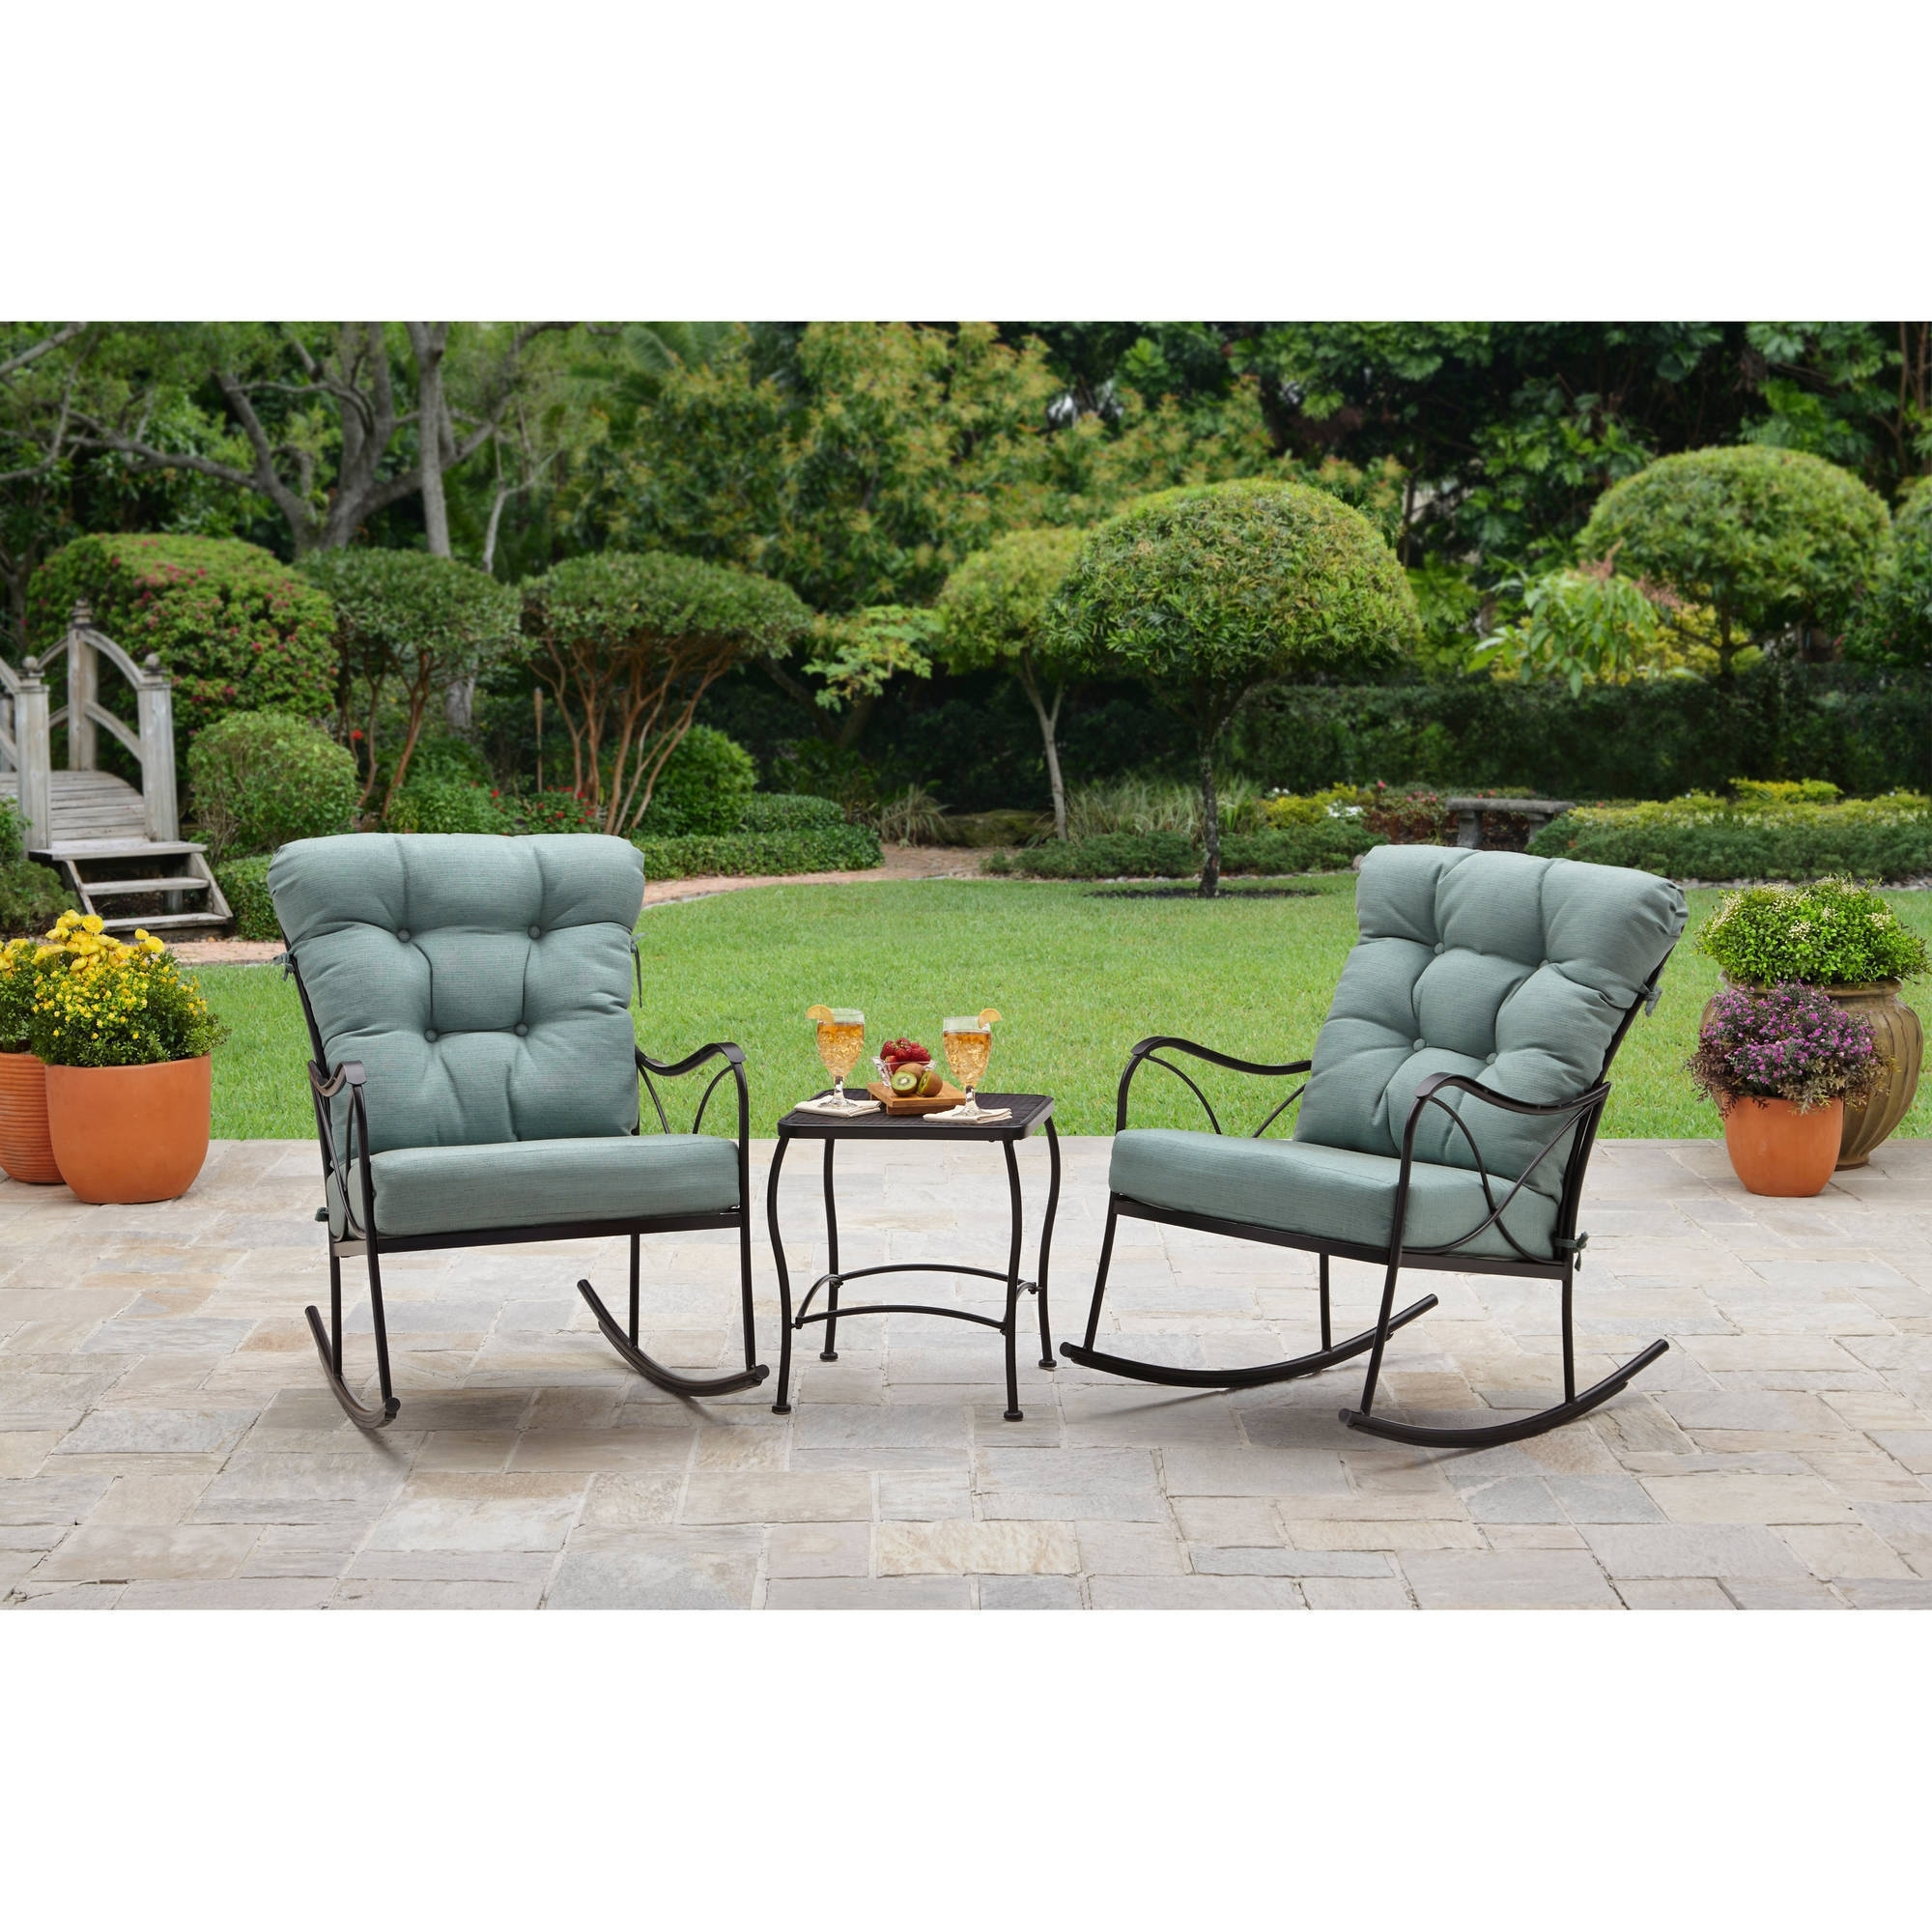 Latest Better Homes And Gardens Seacliff Patio Furniture Collection In Used Patio Rocking Chairs (View 7 of 15)